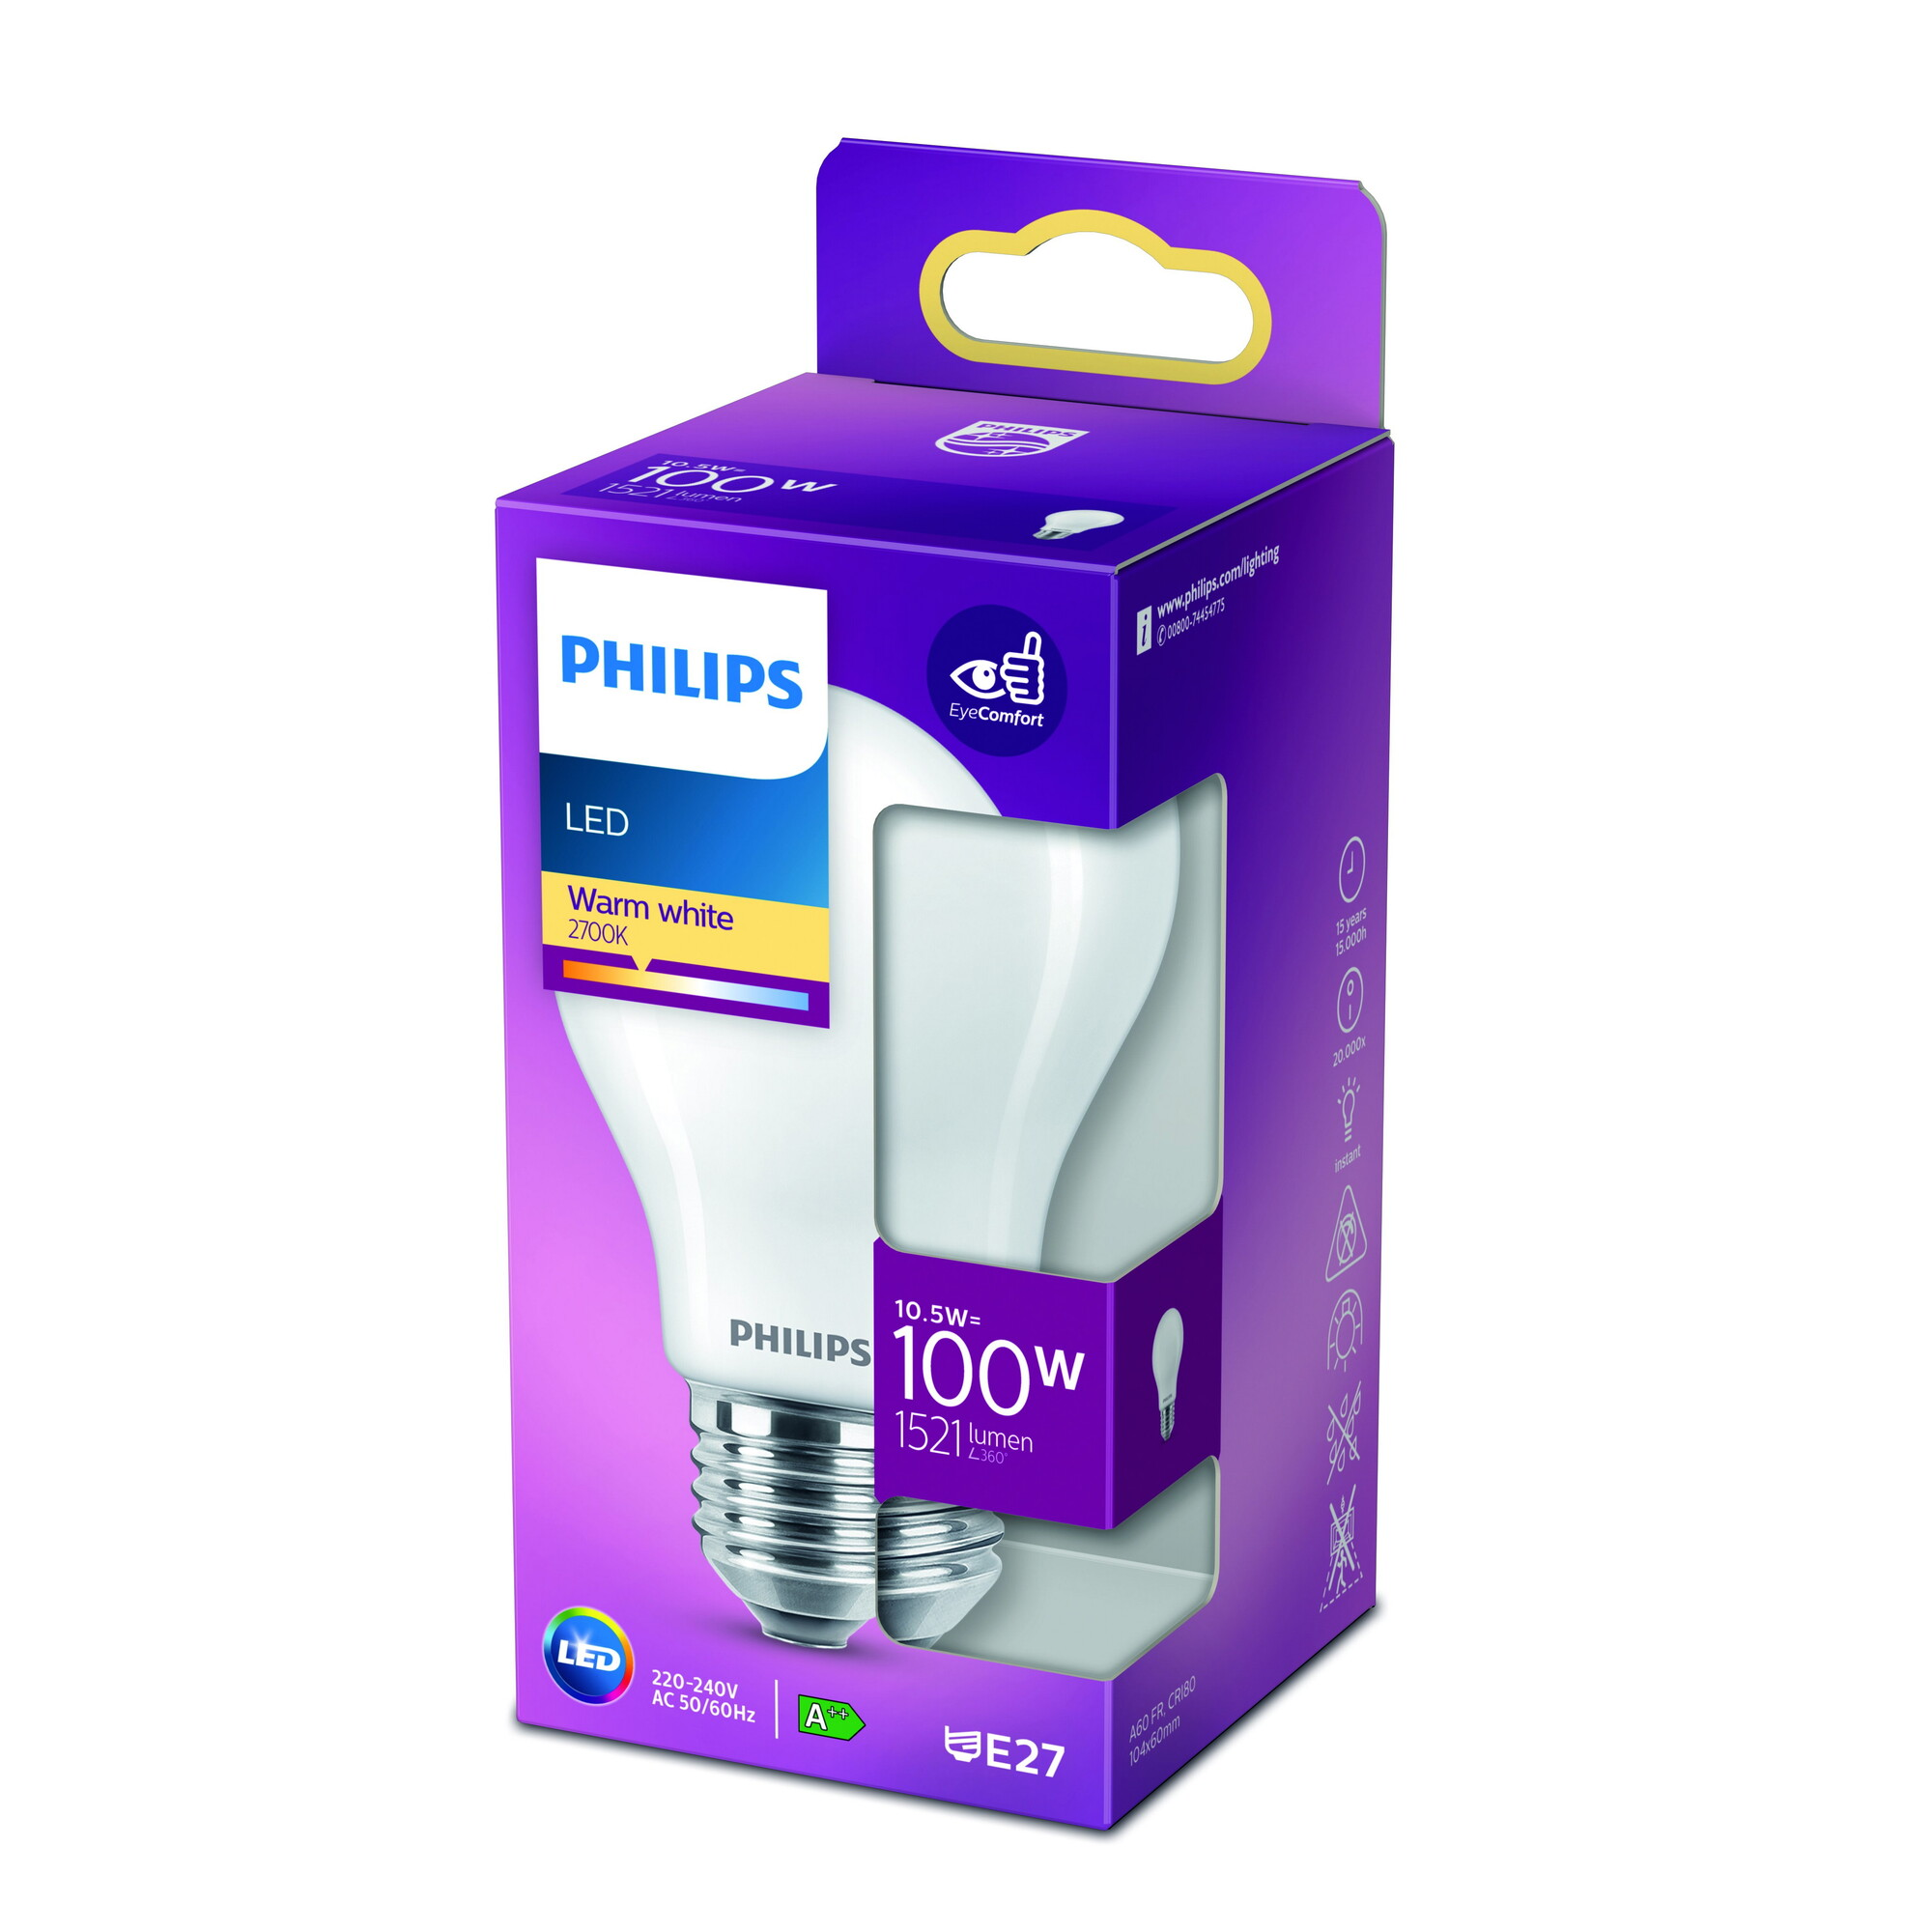 Philips LED classic E27 10,5W 1521lm 2700K Lamp Frosted